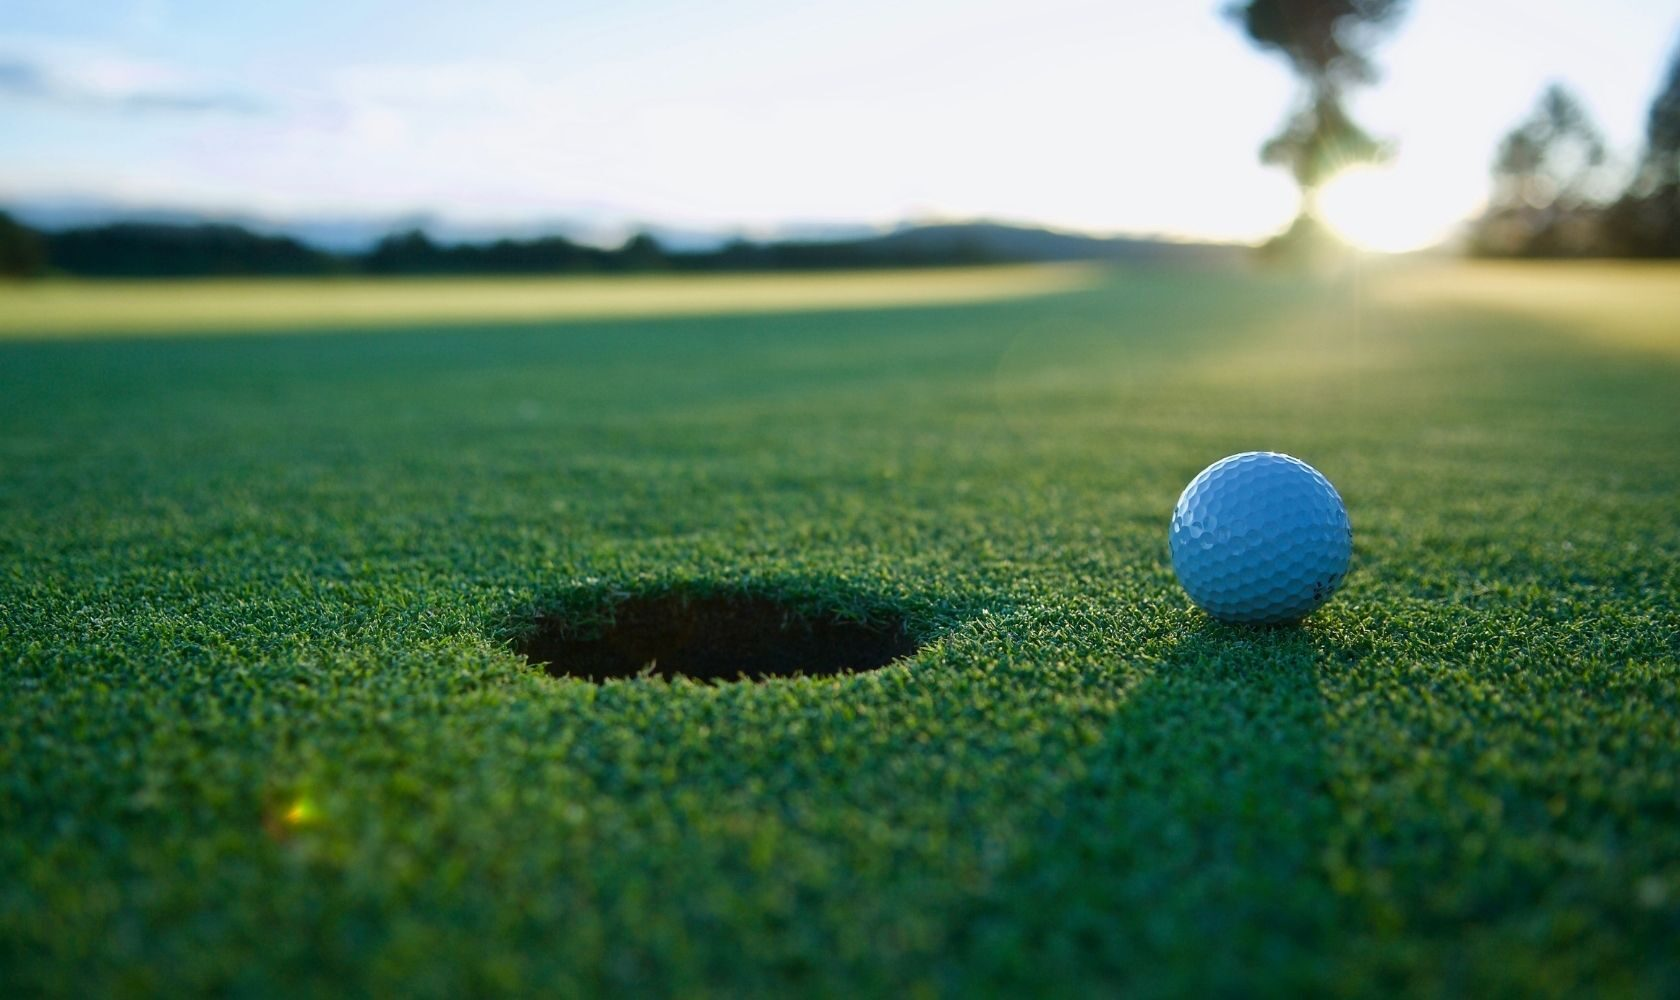 Helping clubs to better understand their participants – Golf NZ's Golf for Life insights project